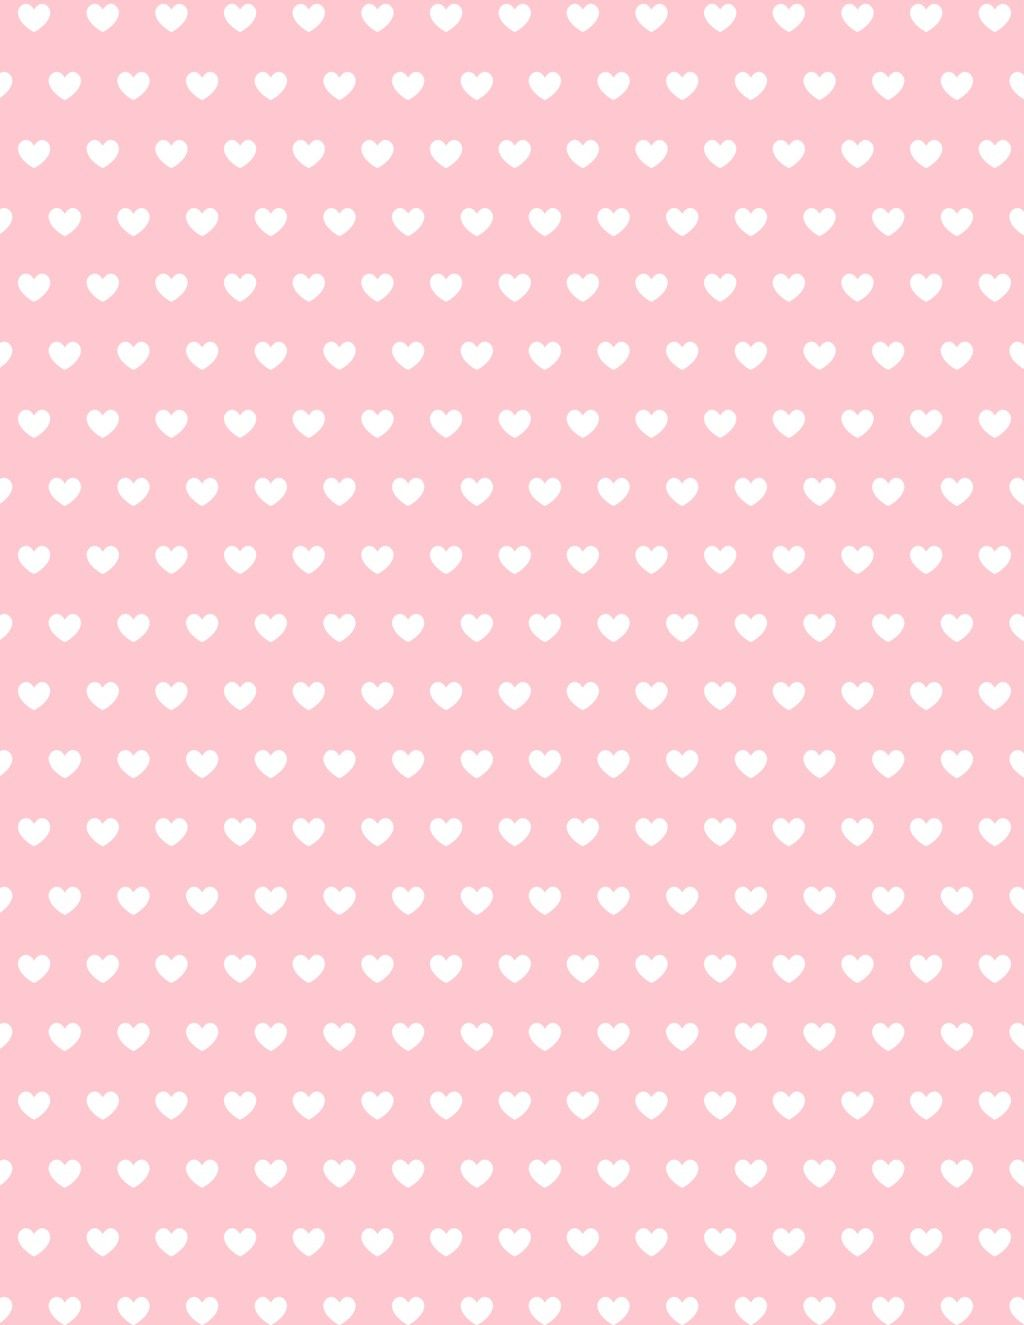 These Free Printable Valentine Hearts Scrapbook Paper Designs Are Perfect For Valentine S Day Or